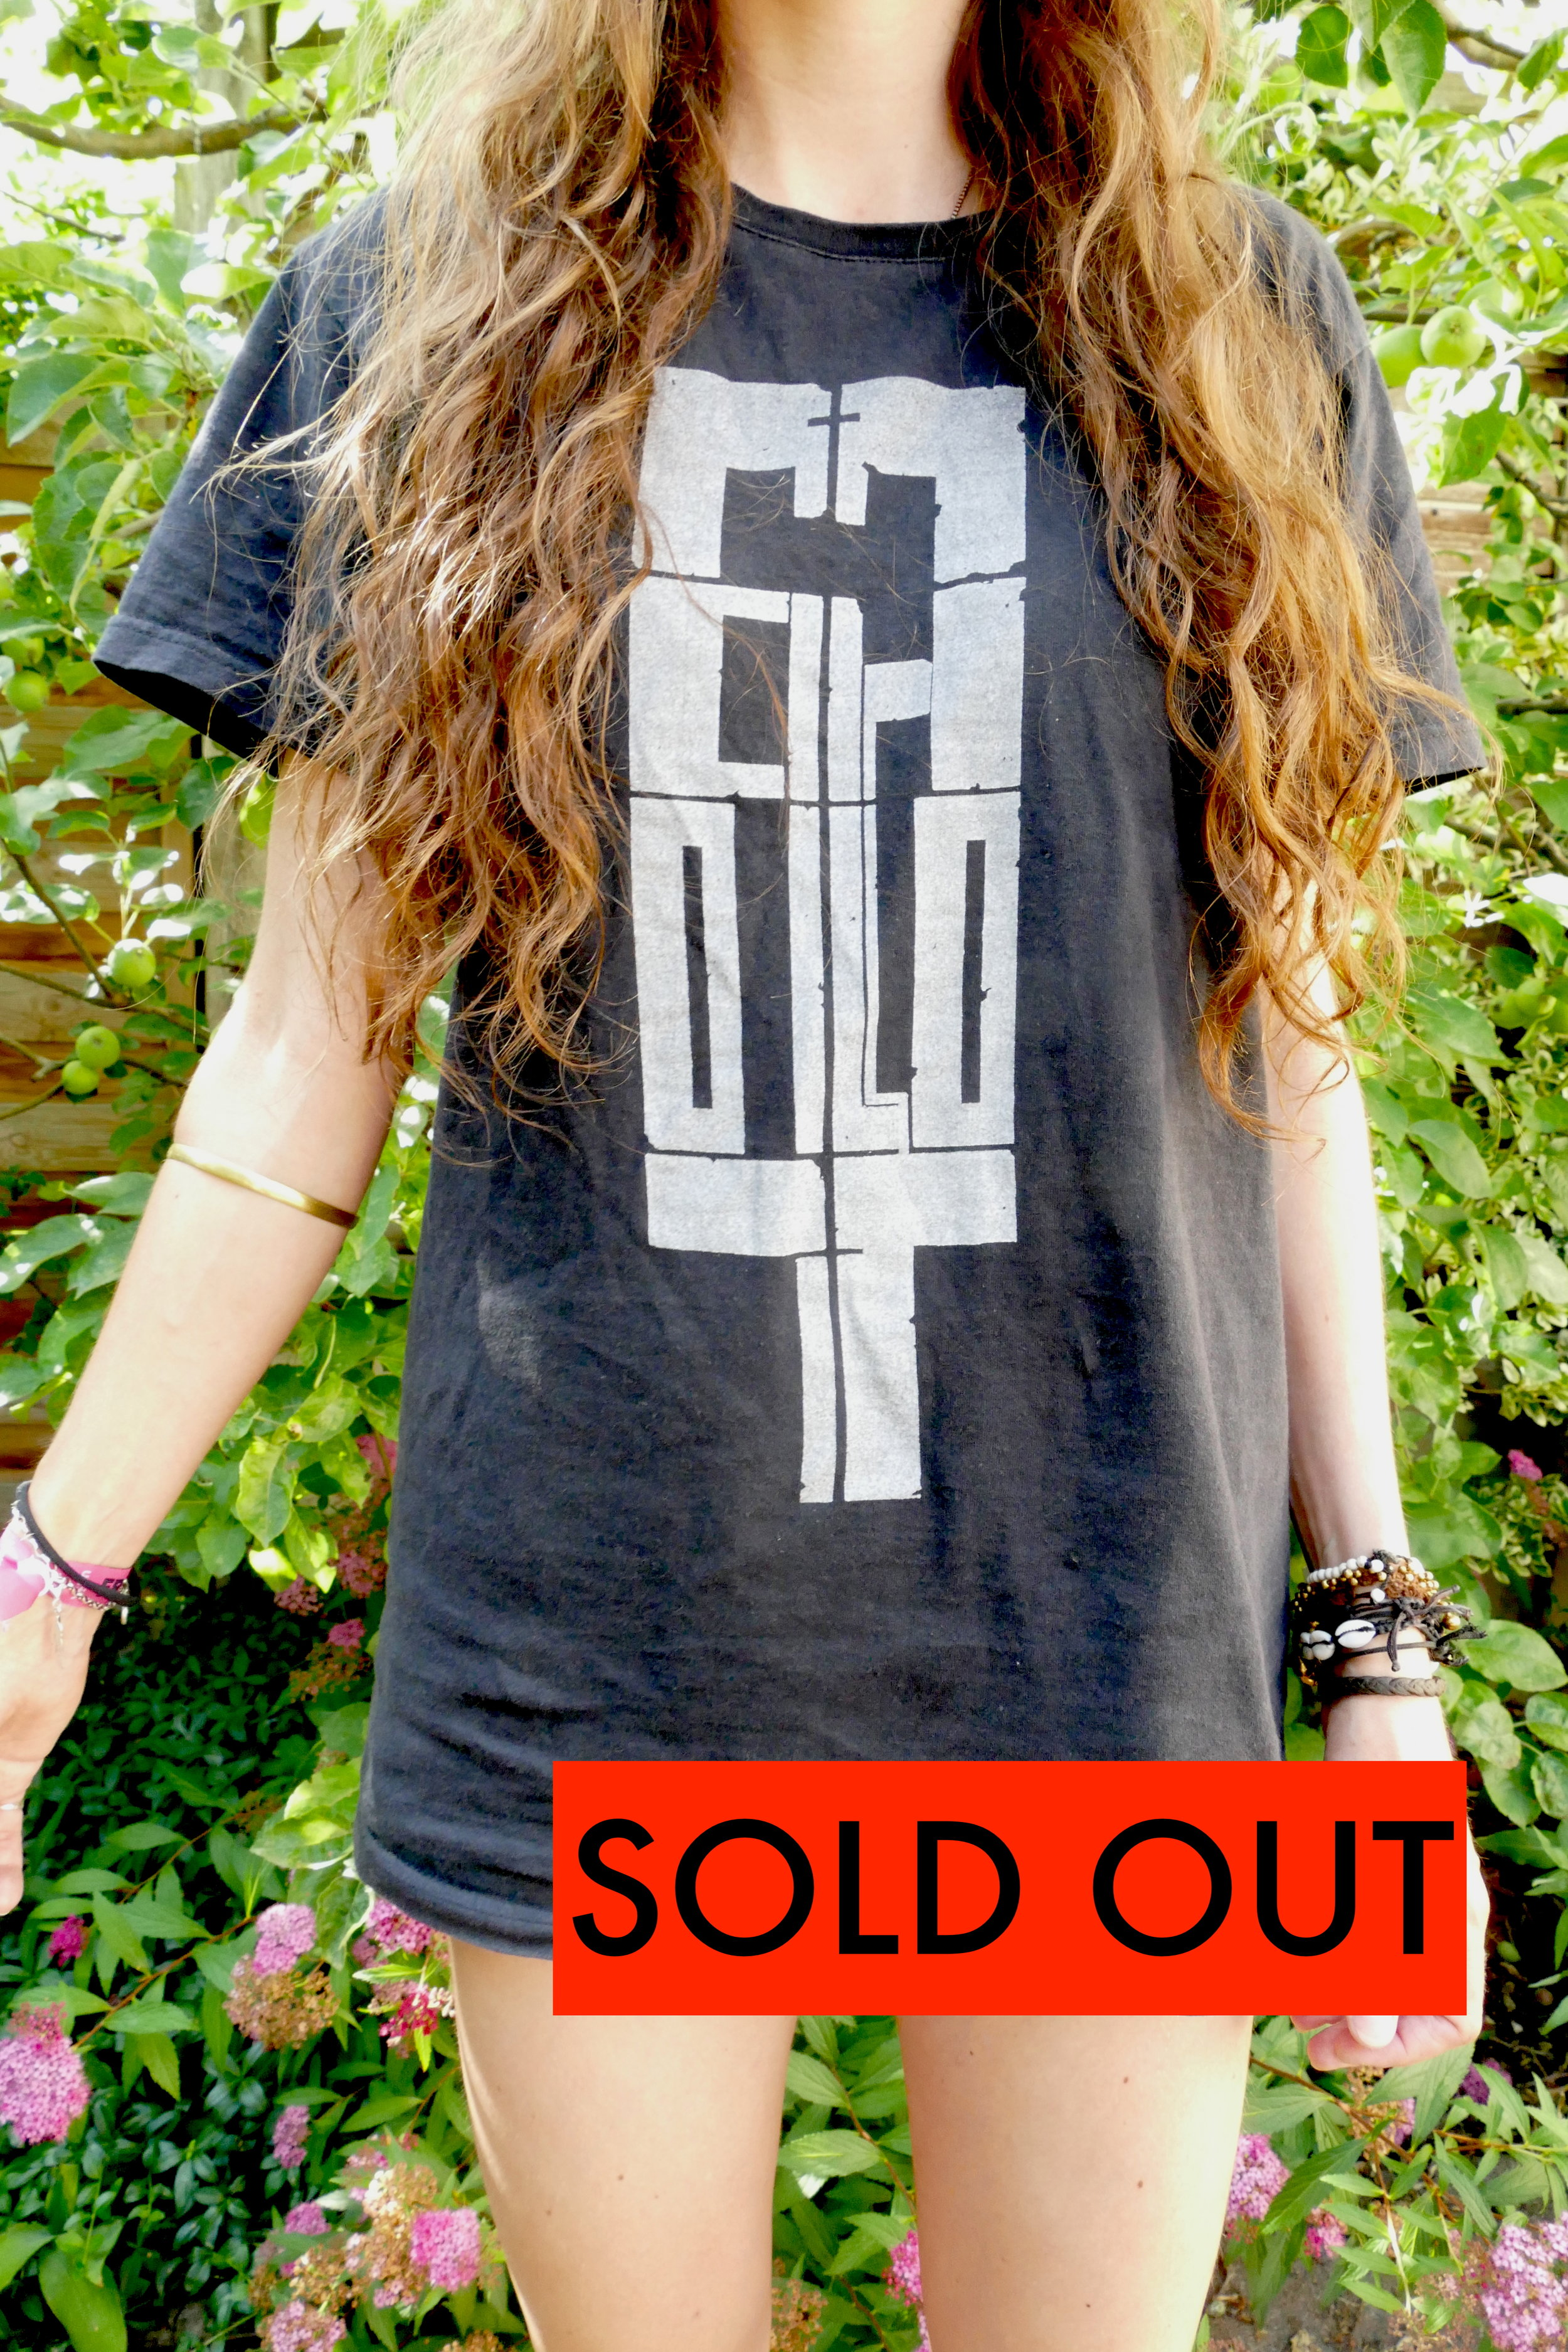 SOLD OUT - WHITE ON BLACK